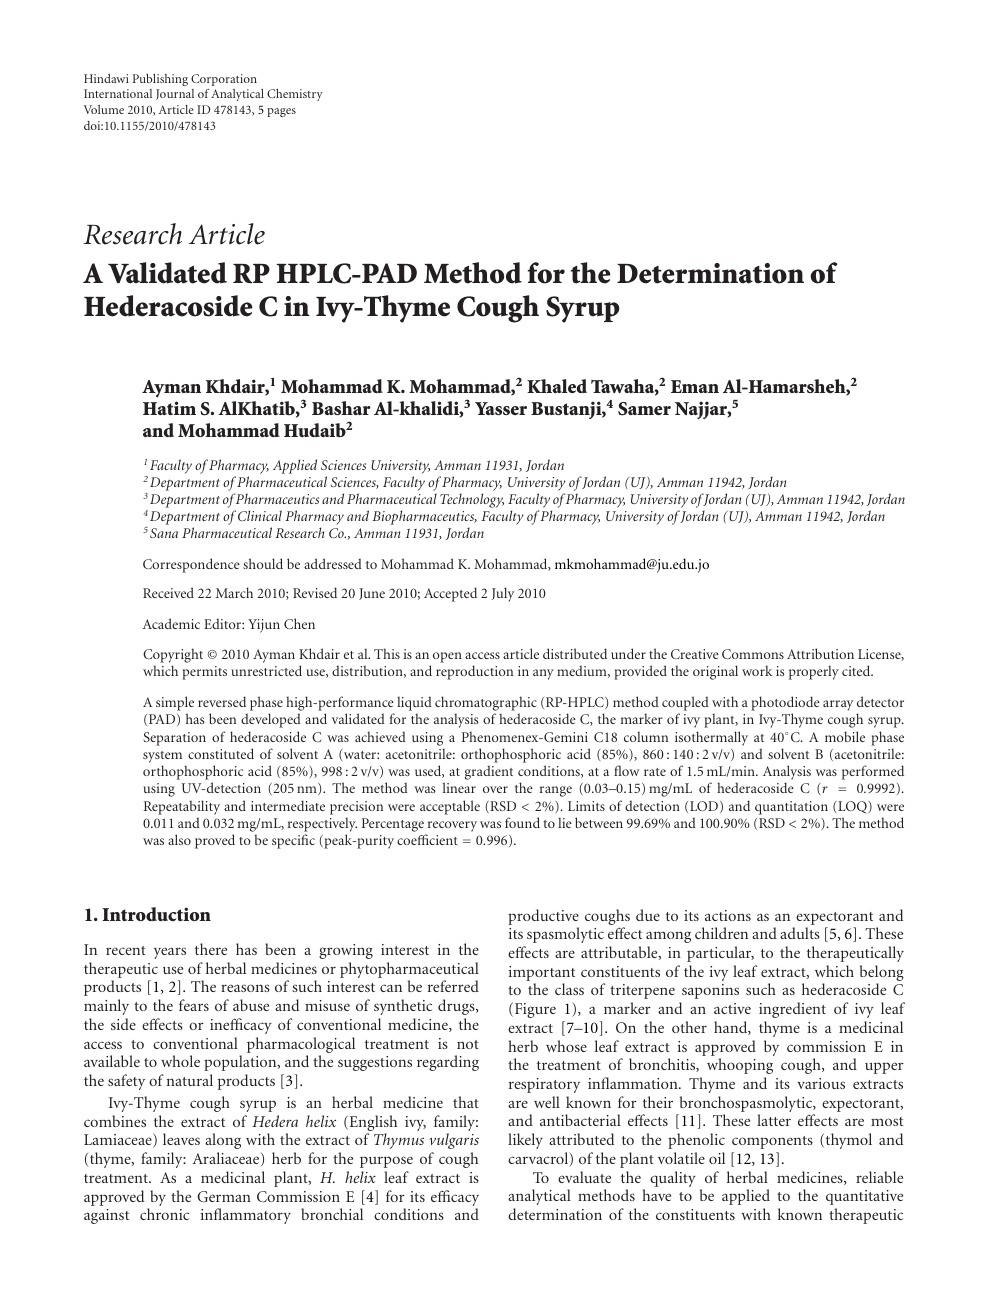 A Validated RP HPLC-PAD Method for the Determination of Hederacoside